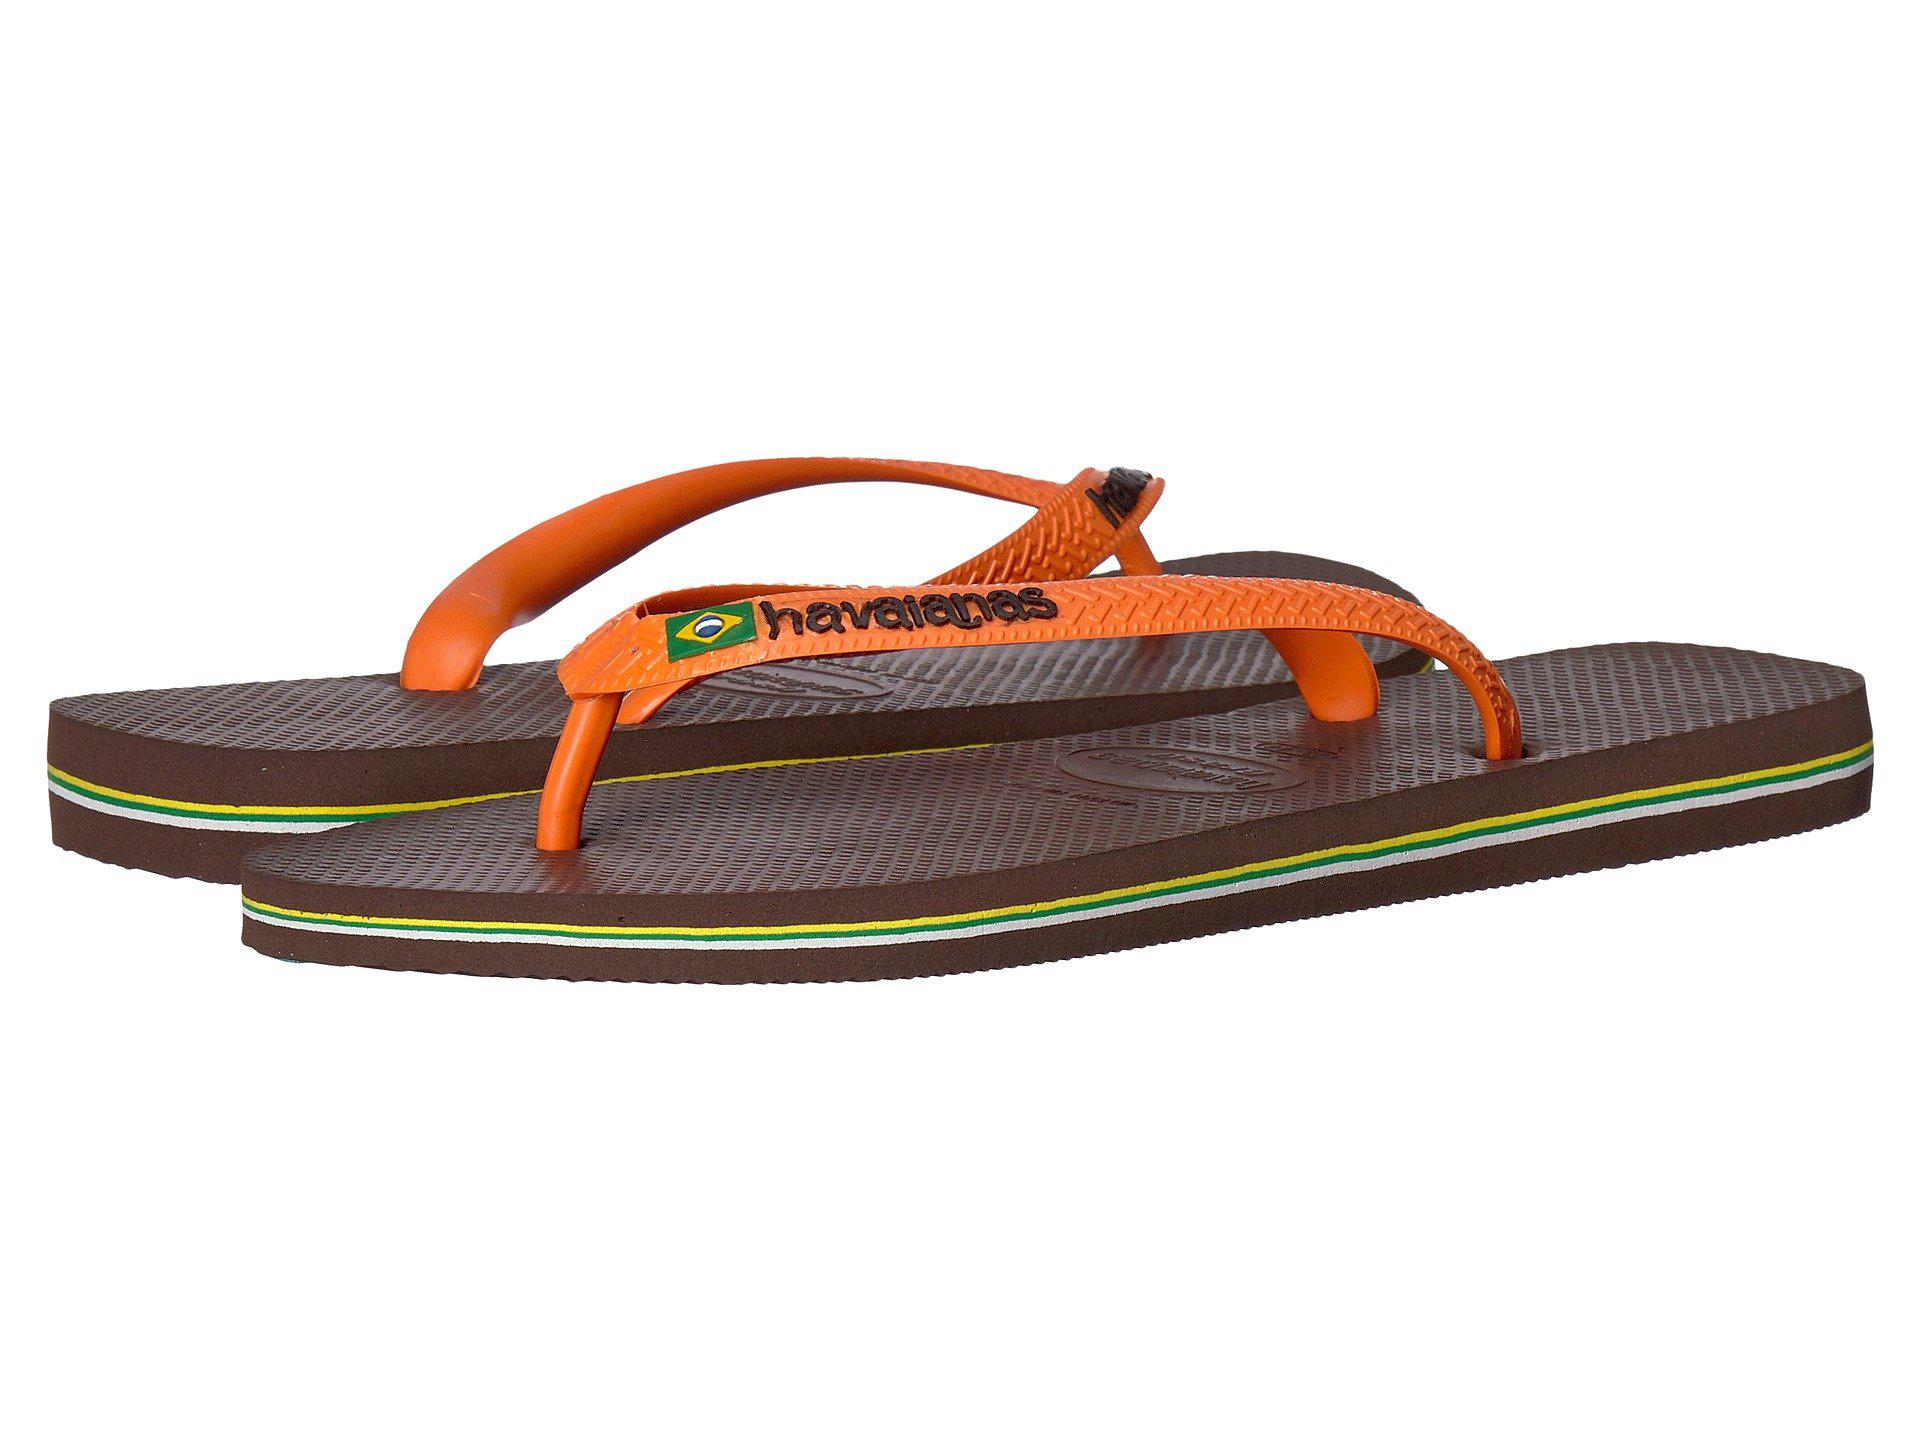 056d4a18a1 Lyst - Havaianas Brazil Logo Flip Flops (red) Men s Sandals in Brown ...